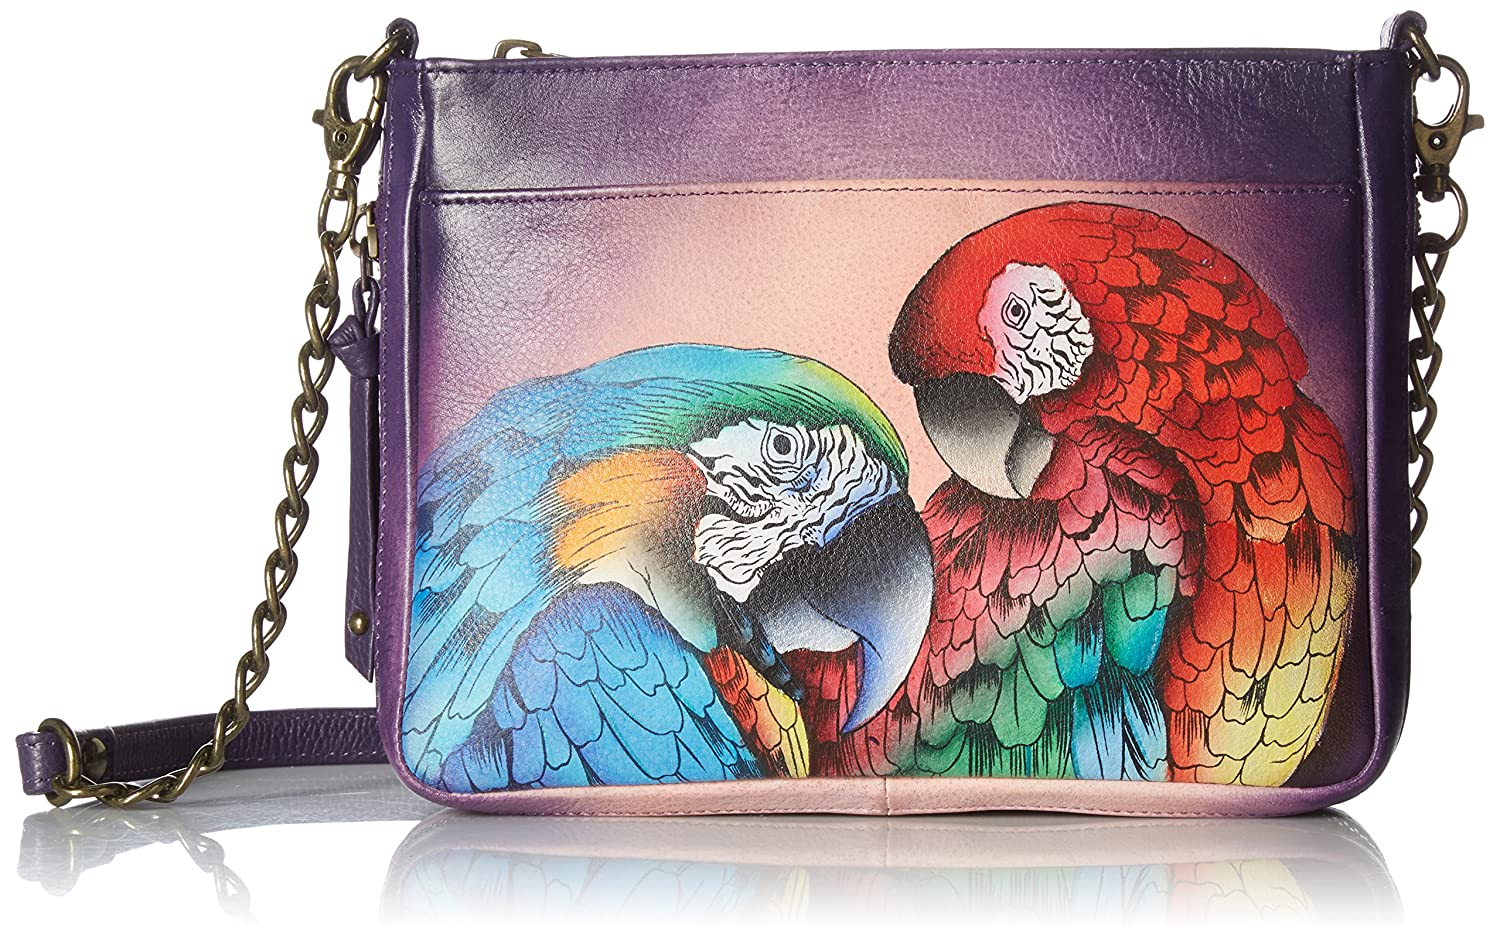 Image of Luggage Anuschka Women's Genuine Leather Compact Crossbody With Front Pocket - Hand Painted Original Artwork